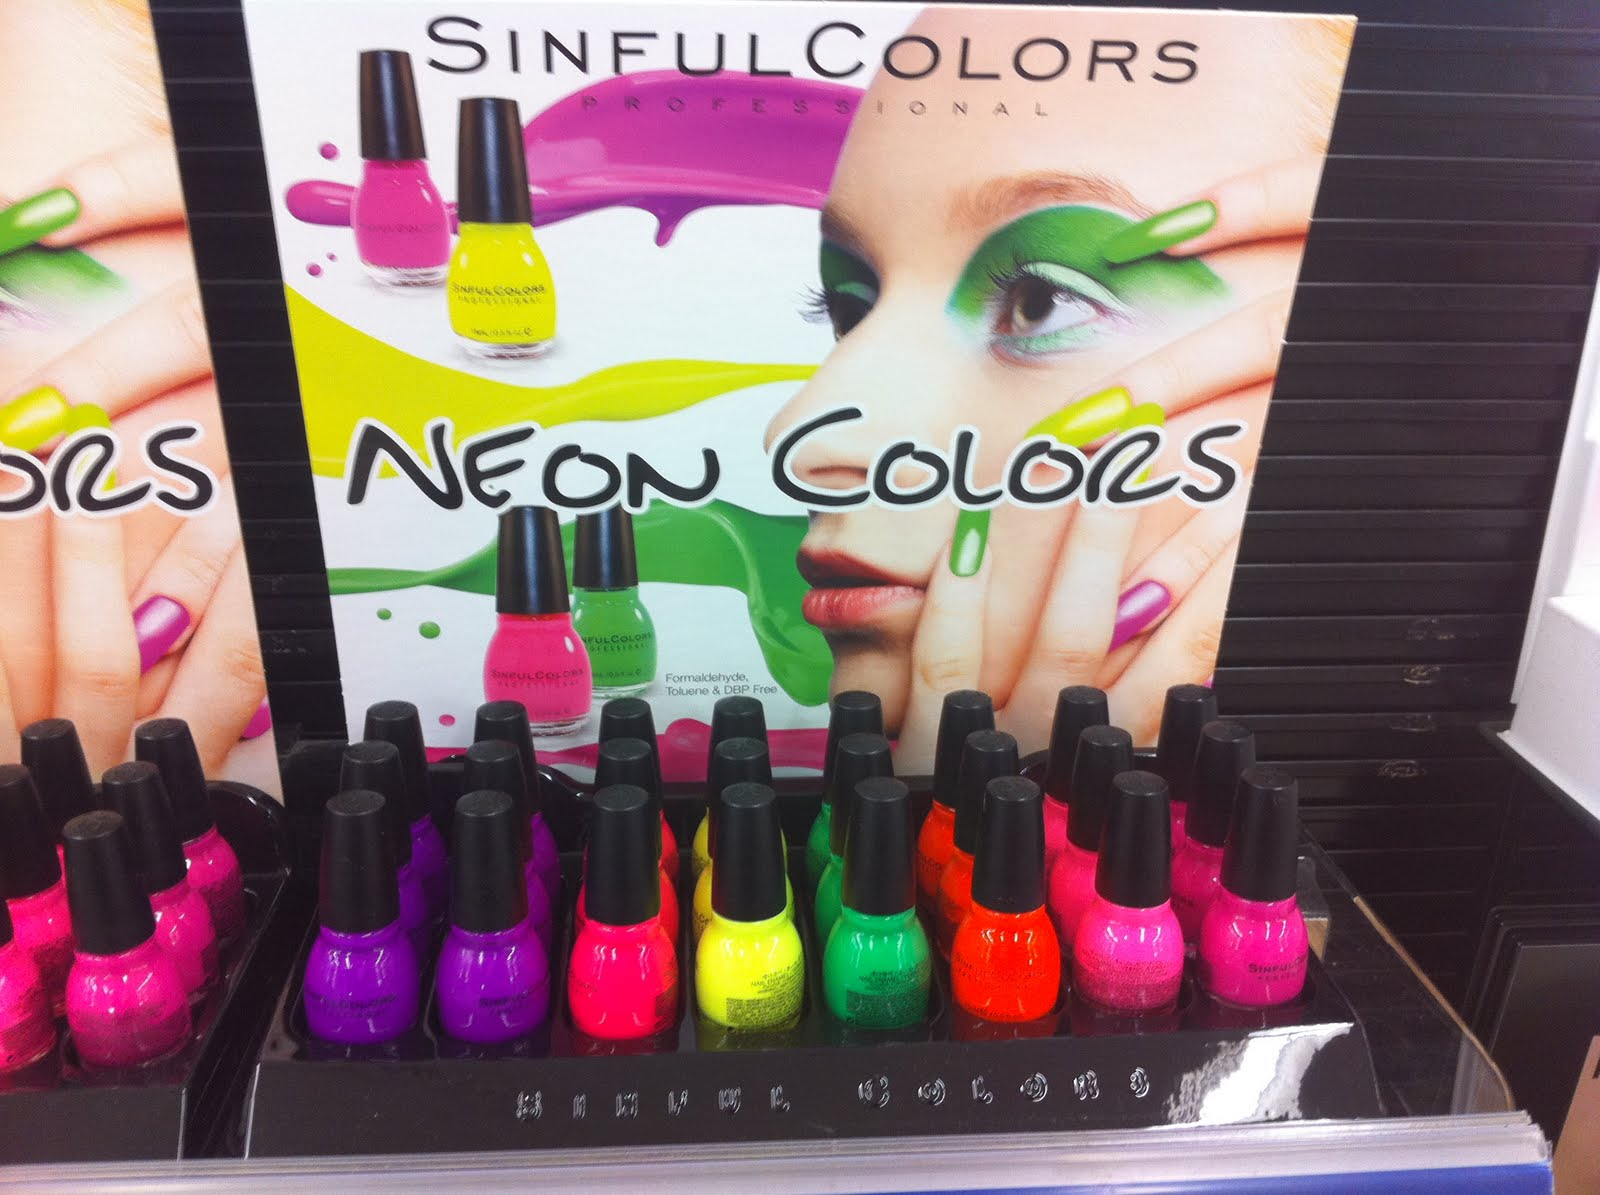 Diva Makeup Queen Sinful Colors Neon Colors Nail Polish-7010